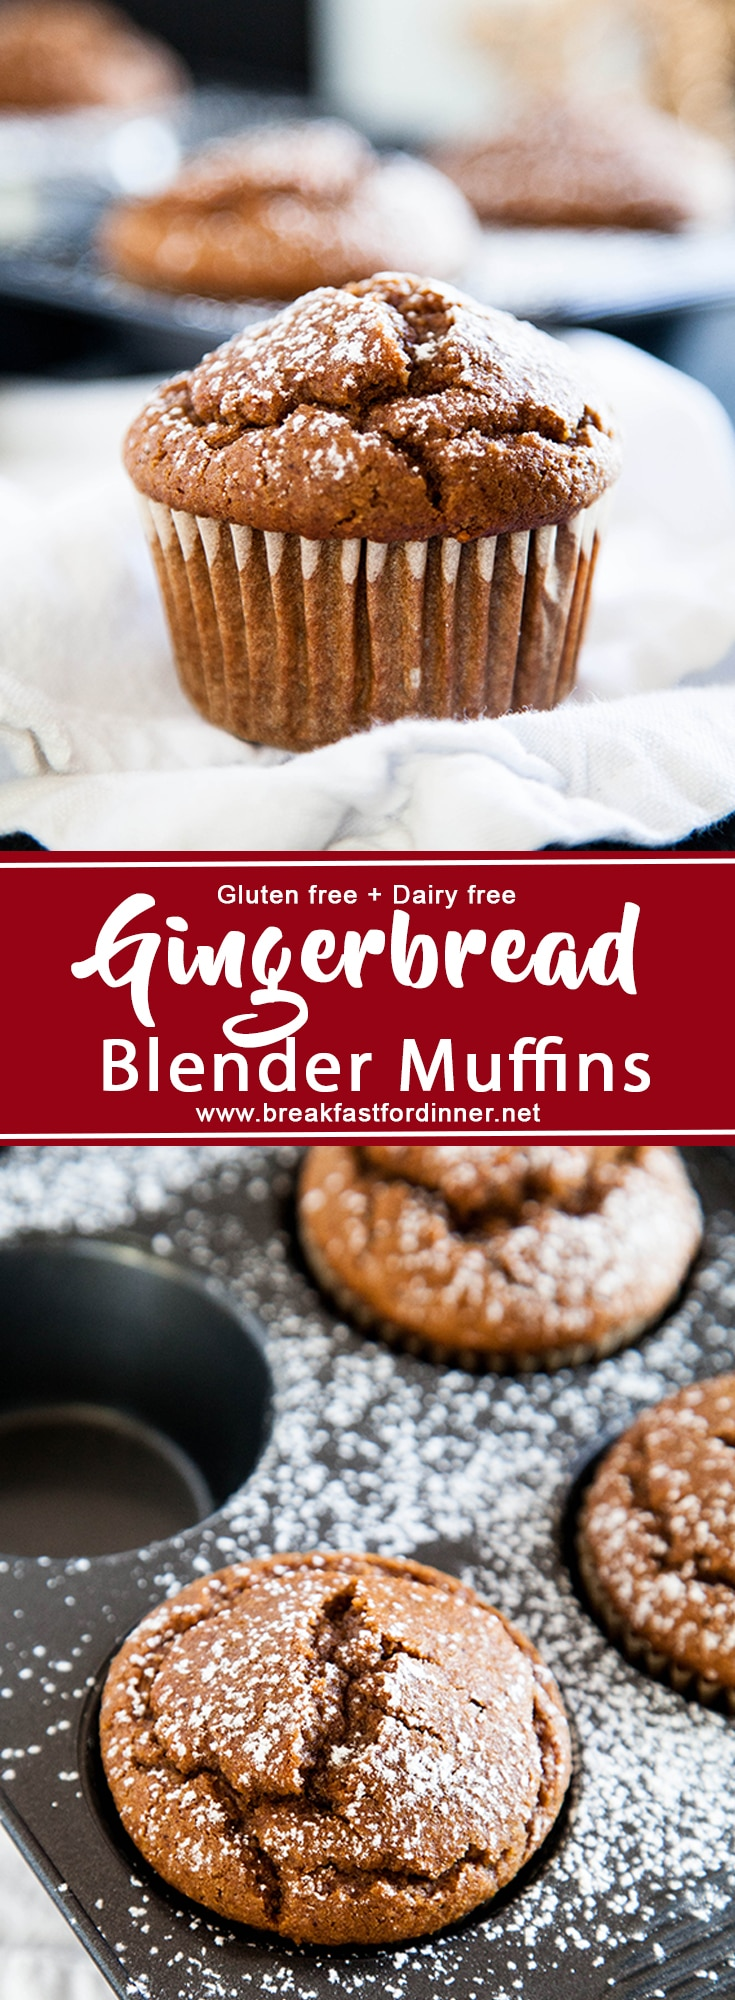 Gingerbread Blender Muffins are made 100% in the blender, and are gluten and dairy-free (bonus!). A quick and easy holiday muffin!